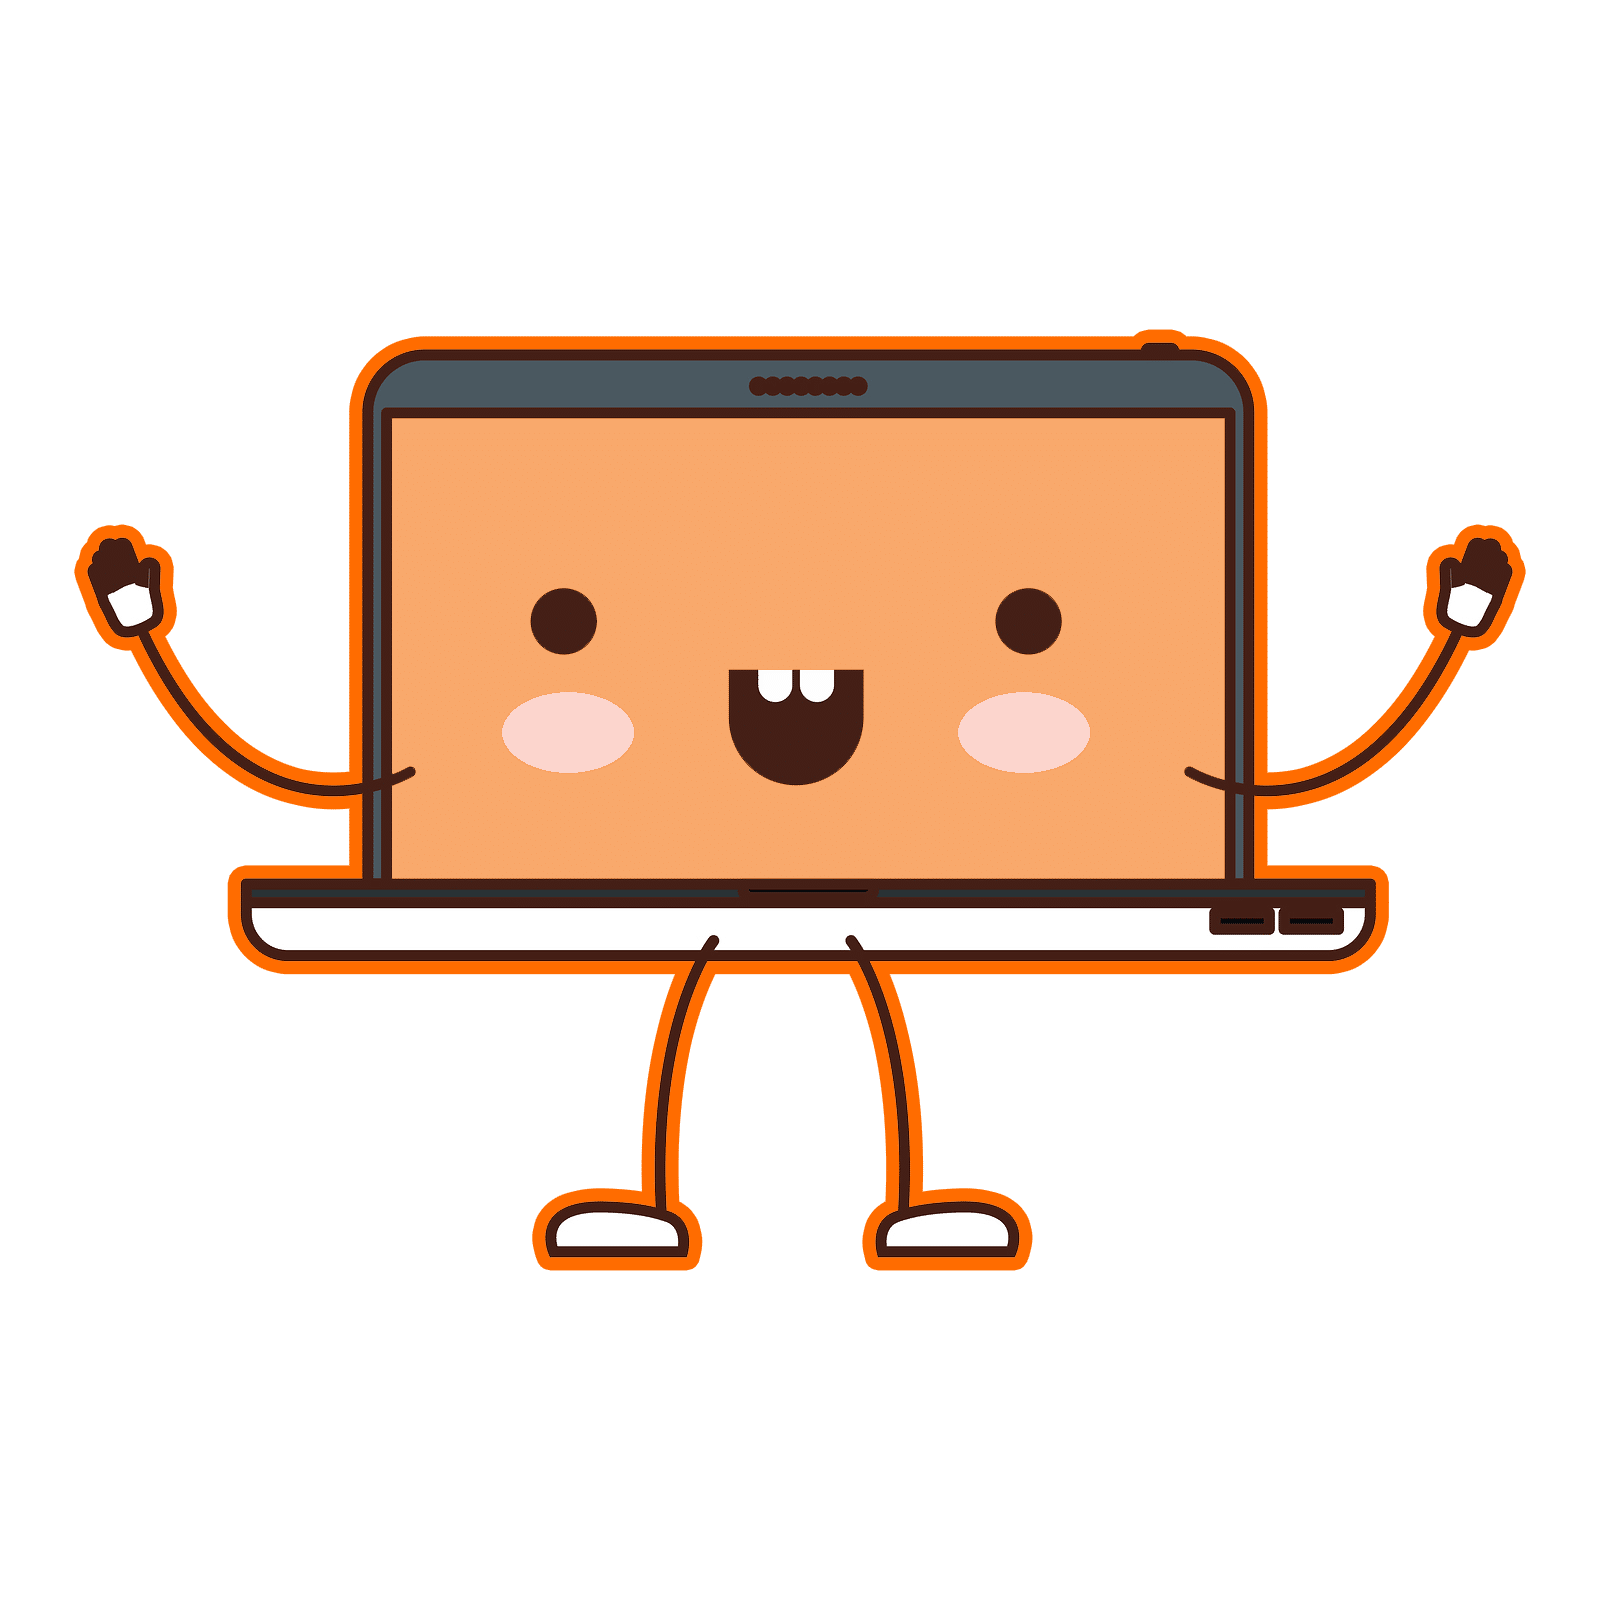 Cute Cartoon Laptop with smiley face